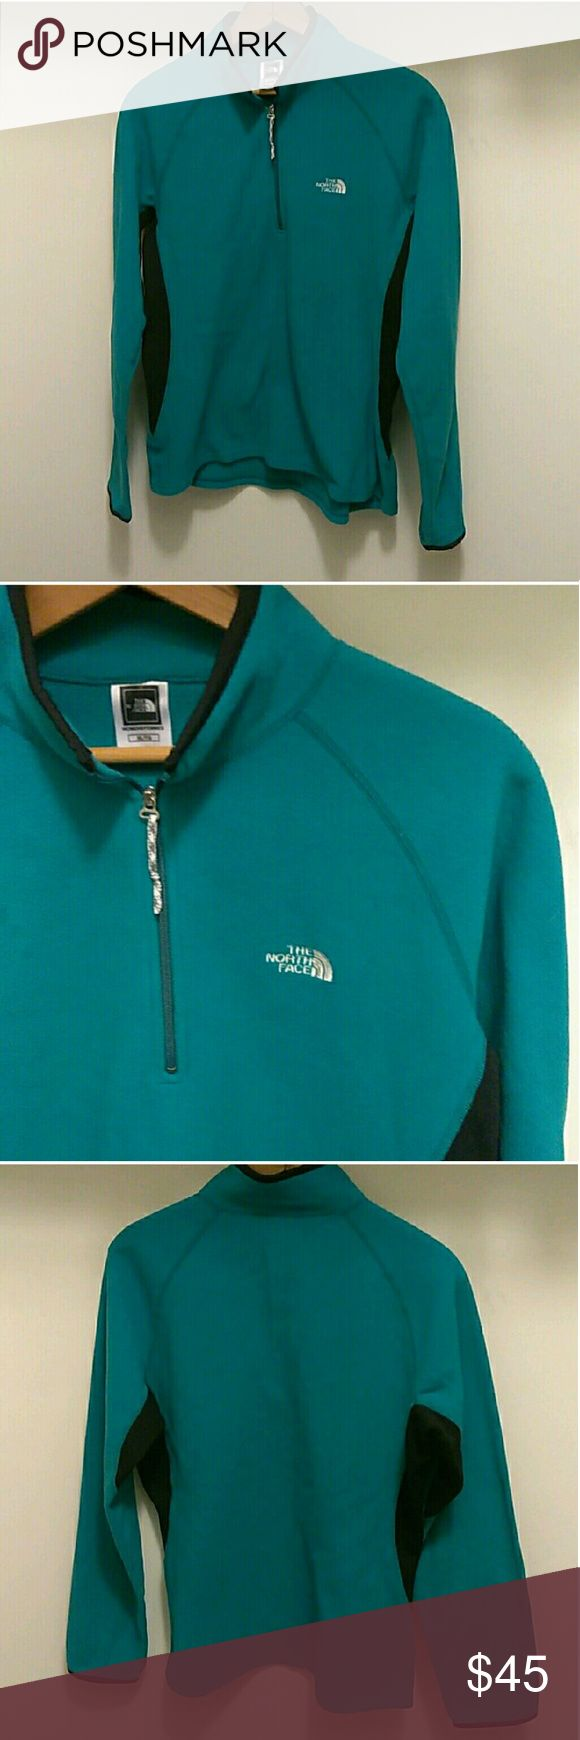 North Face Pullover Sz XL North Face Pullover Sz XL North Face Tops Sweatshirts & Hoodies